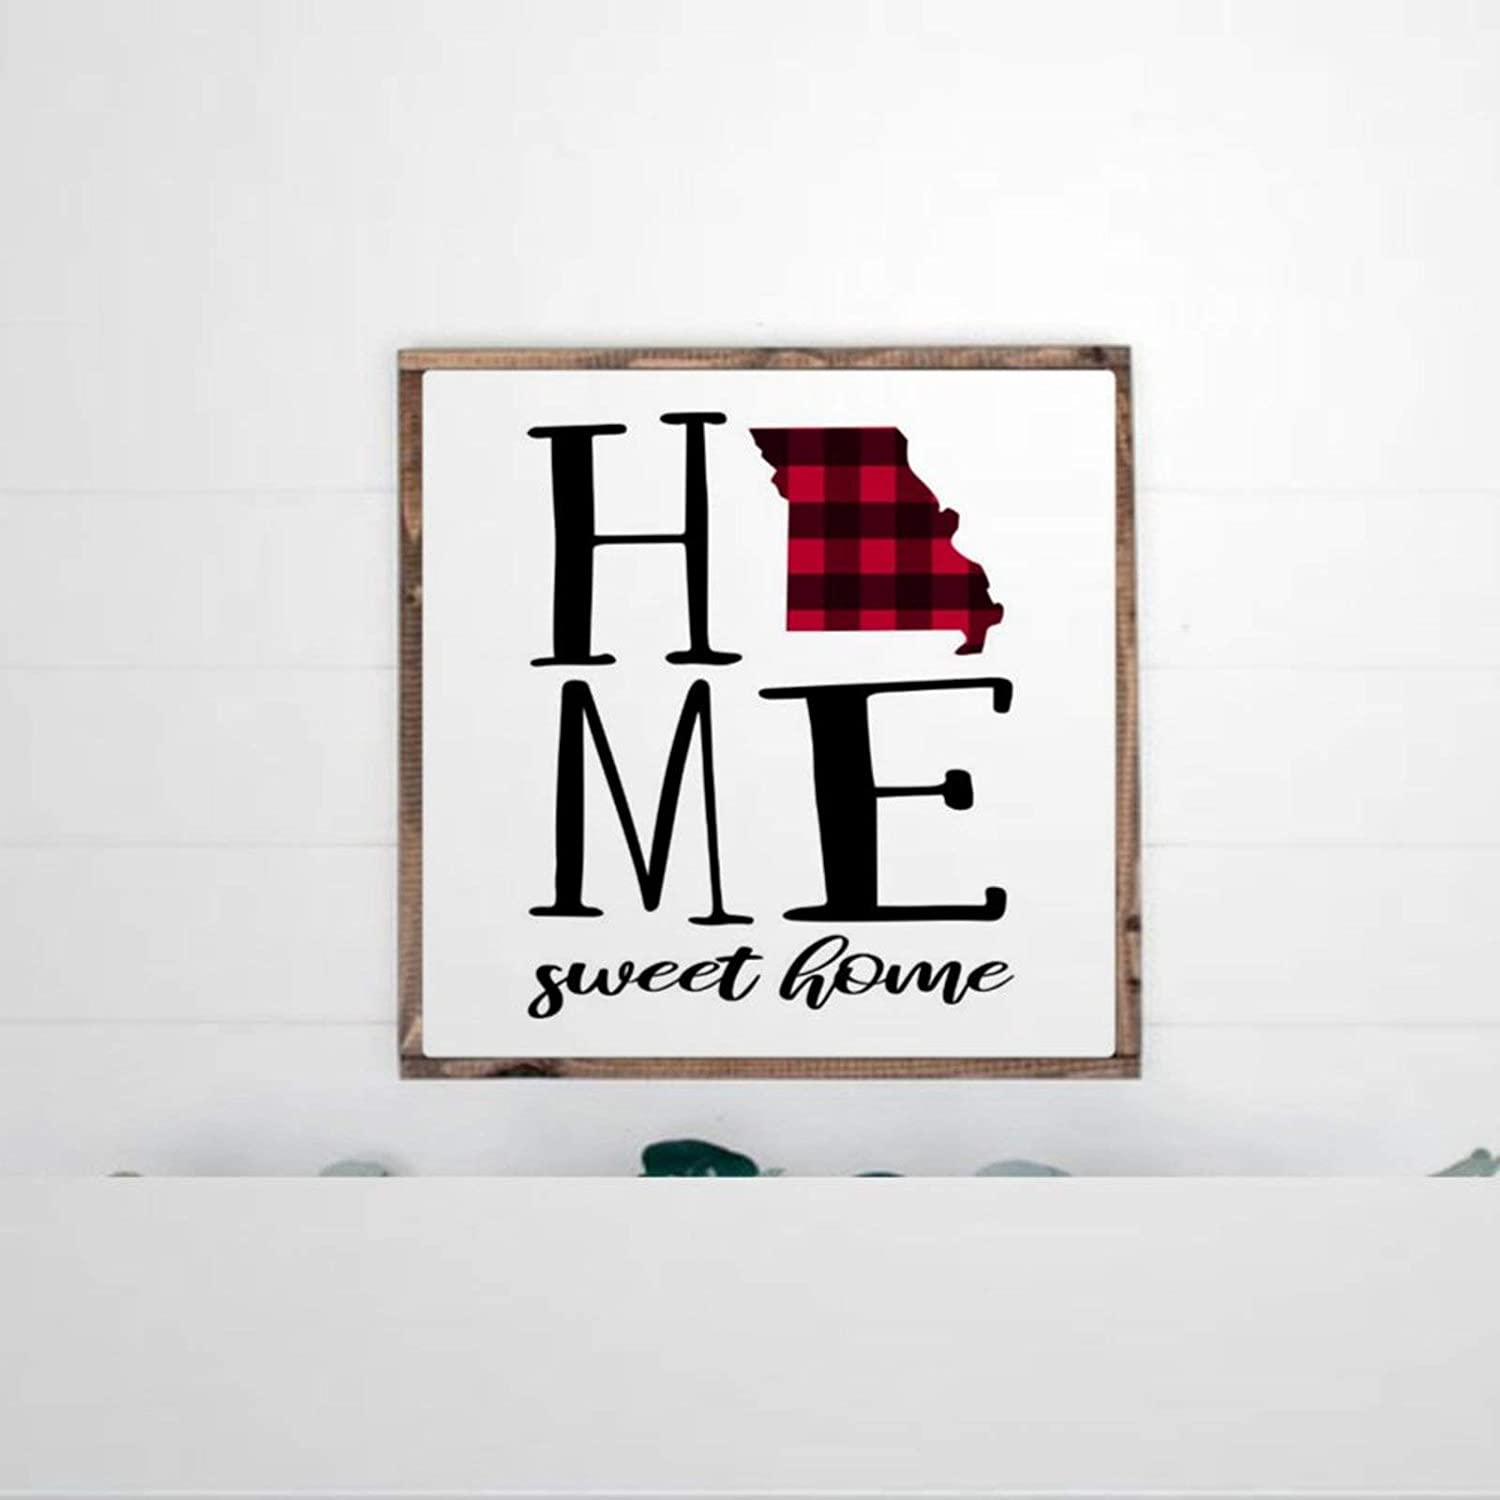 DONL9BAUER Framed Wooden Sign Home Sweet Home Missouri Wall Hanging Buffalo Plaid Print Farmhouse Home Decor Wall Art for Living Room